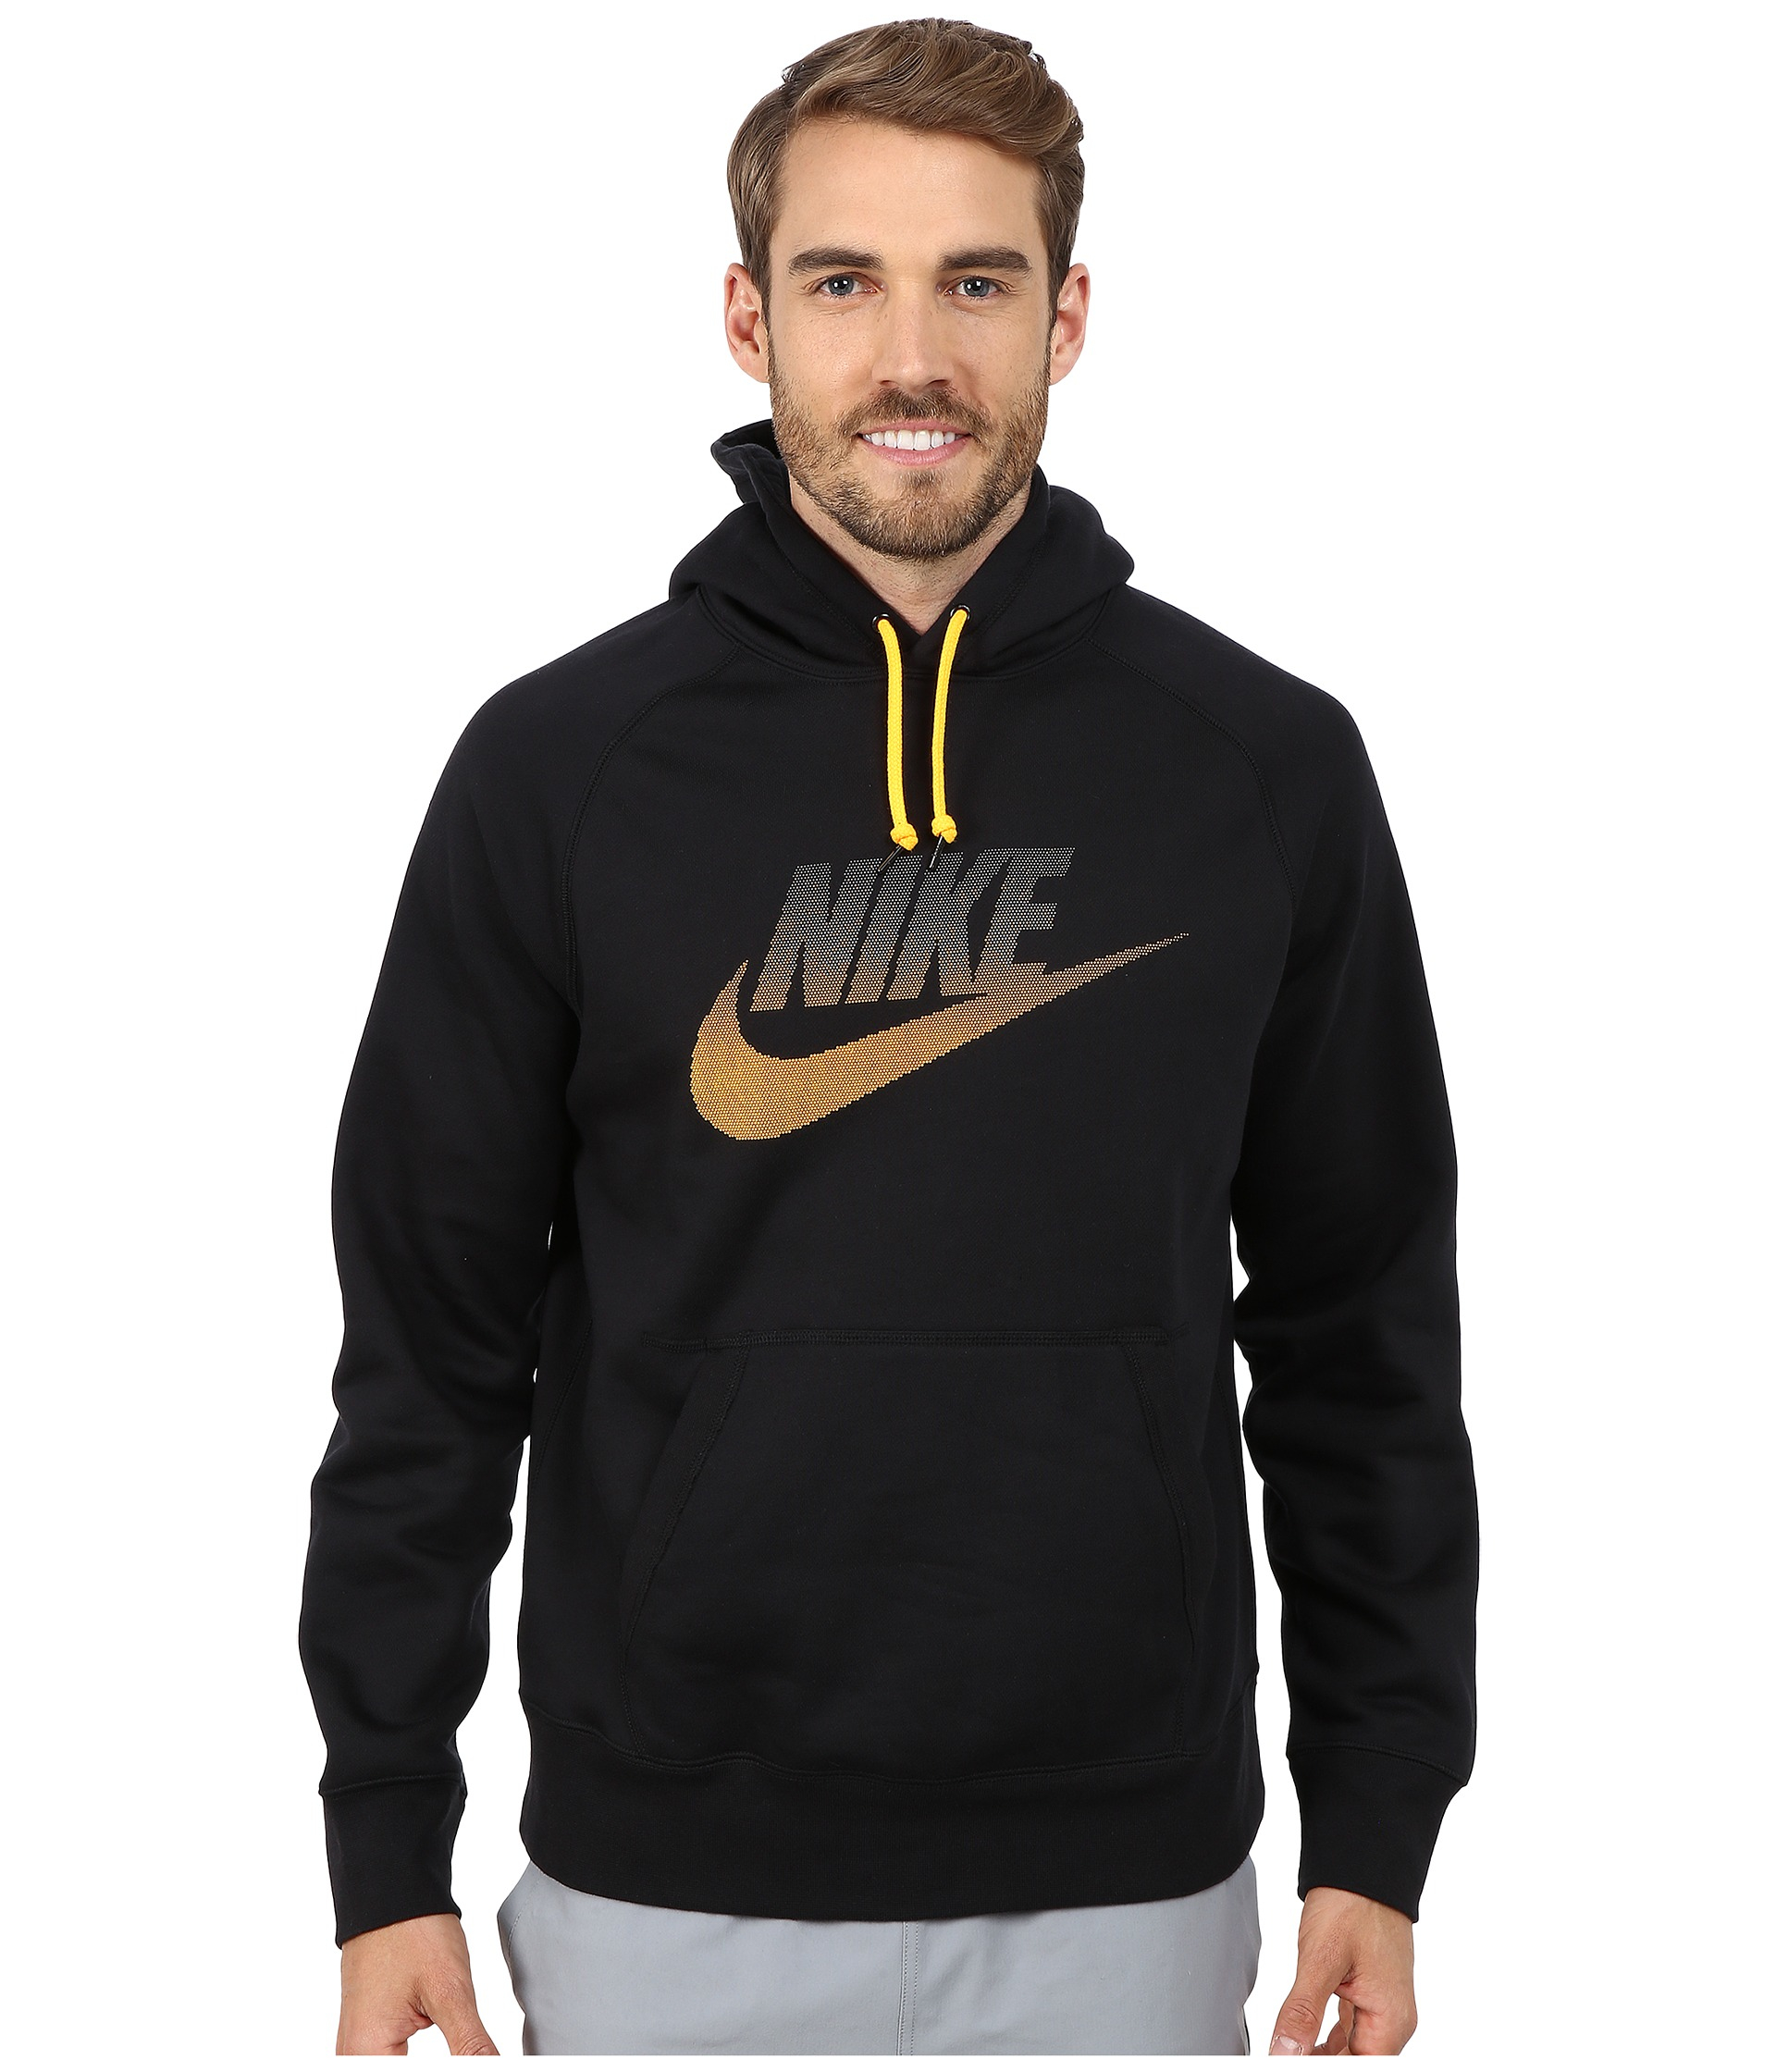 nike aw77 fleece hoodie futura in black for men lyst. Black Bedroom Furniture Sets. Home Design Ideas